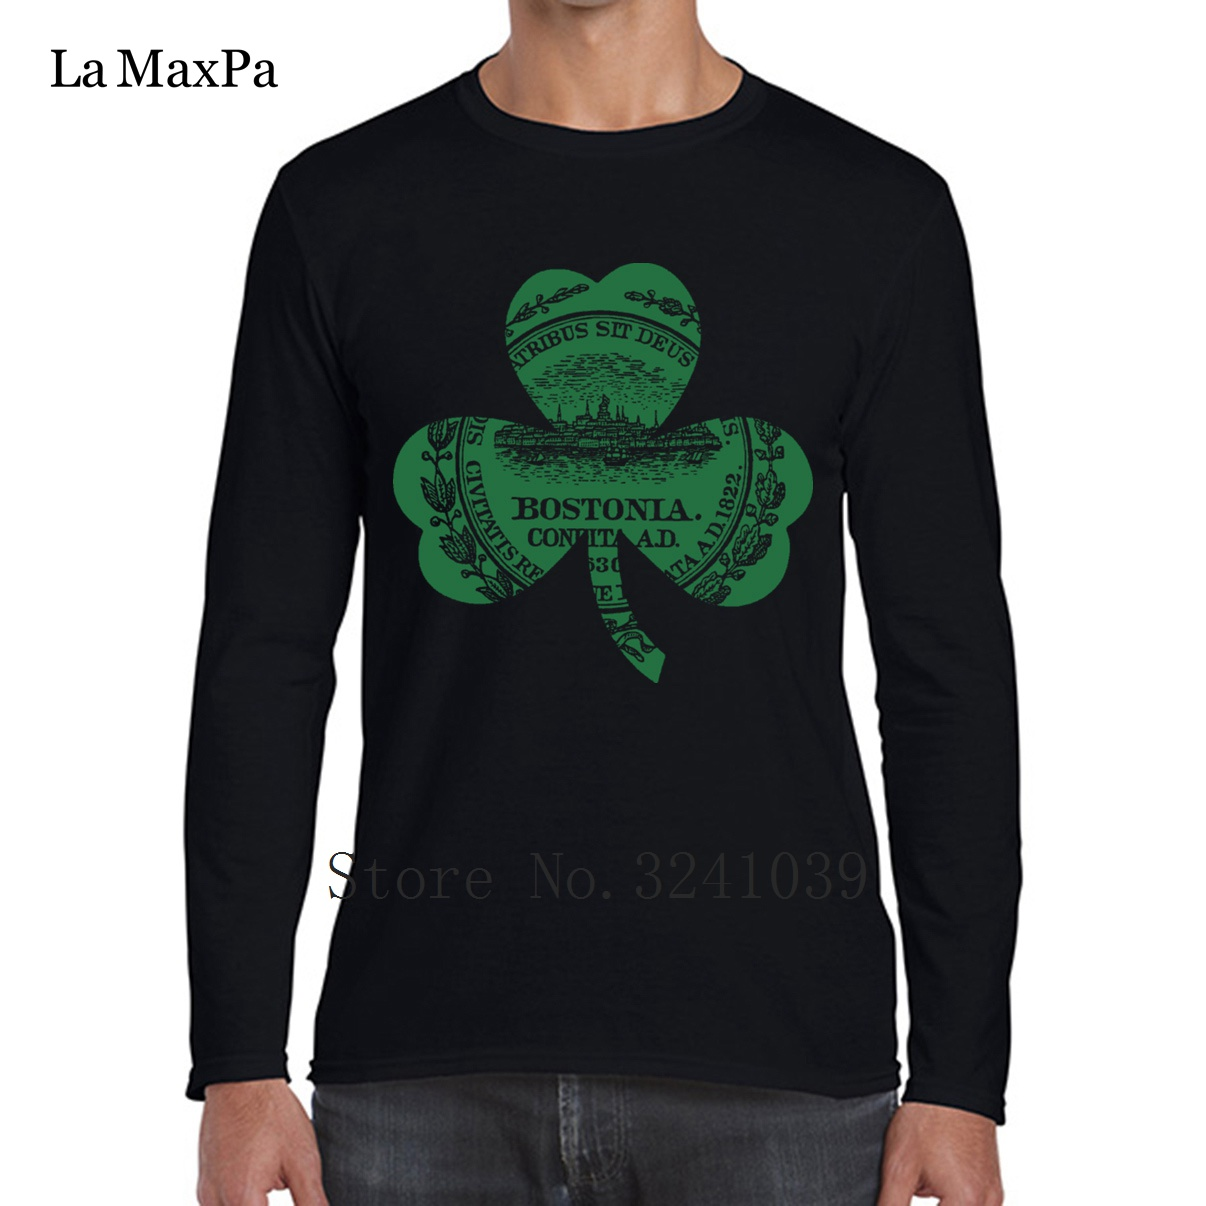 La Maxpa Casual Bostonia Boston <font><b>Massachusetts</b></font> Streetwear Apparel Tee Men's Tee Shirt Spring Men T-Shirt Adult O-Neck Tshirt image